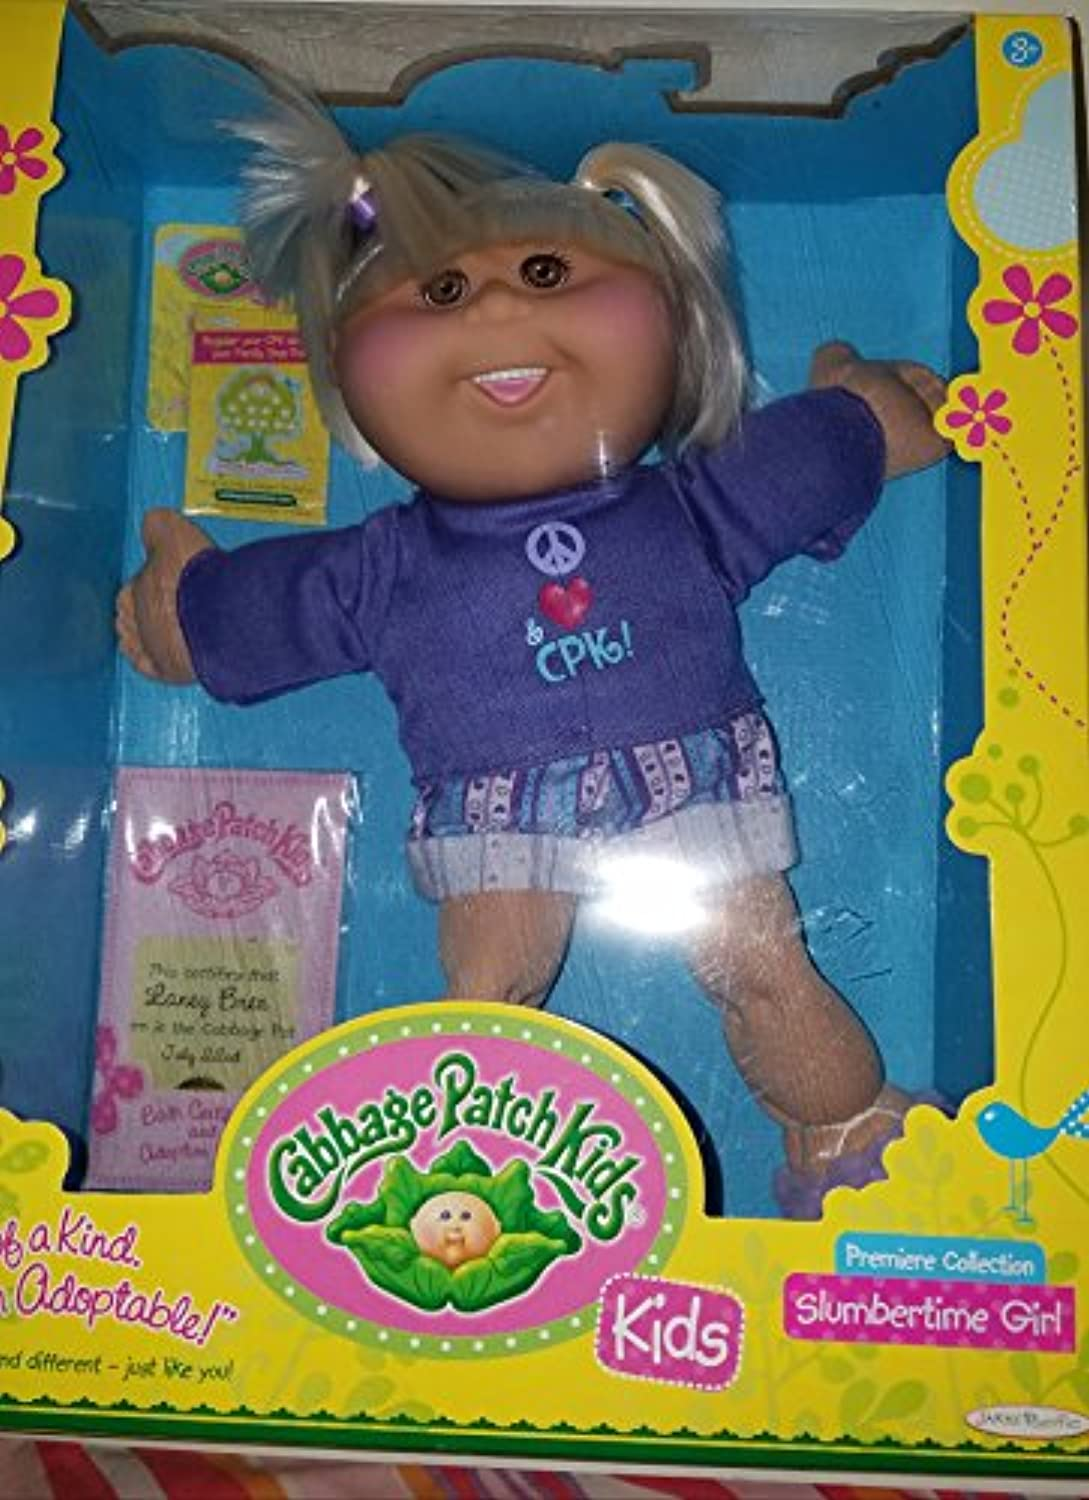 Slumbertime Girl Cabbage Patch Kid (Straight Blonde Hair)